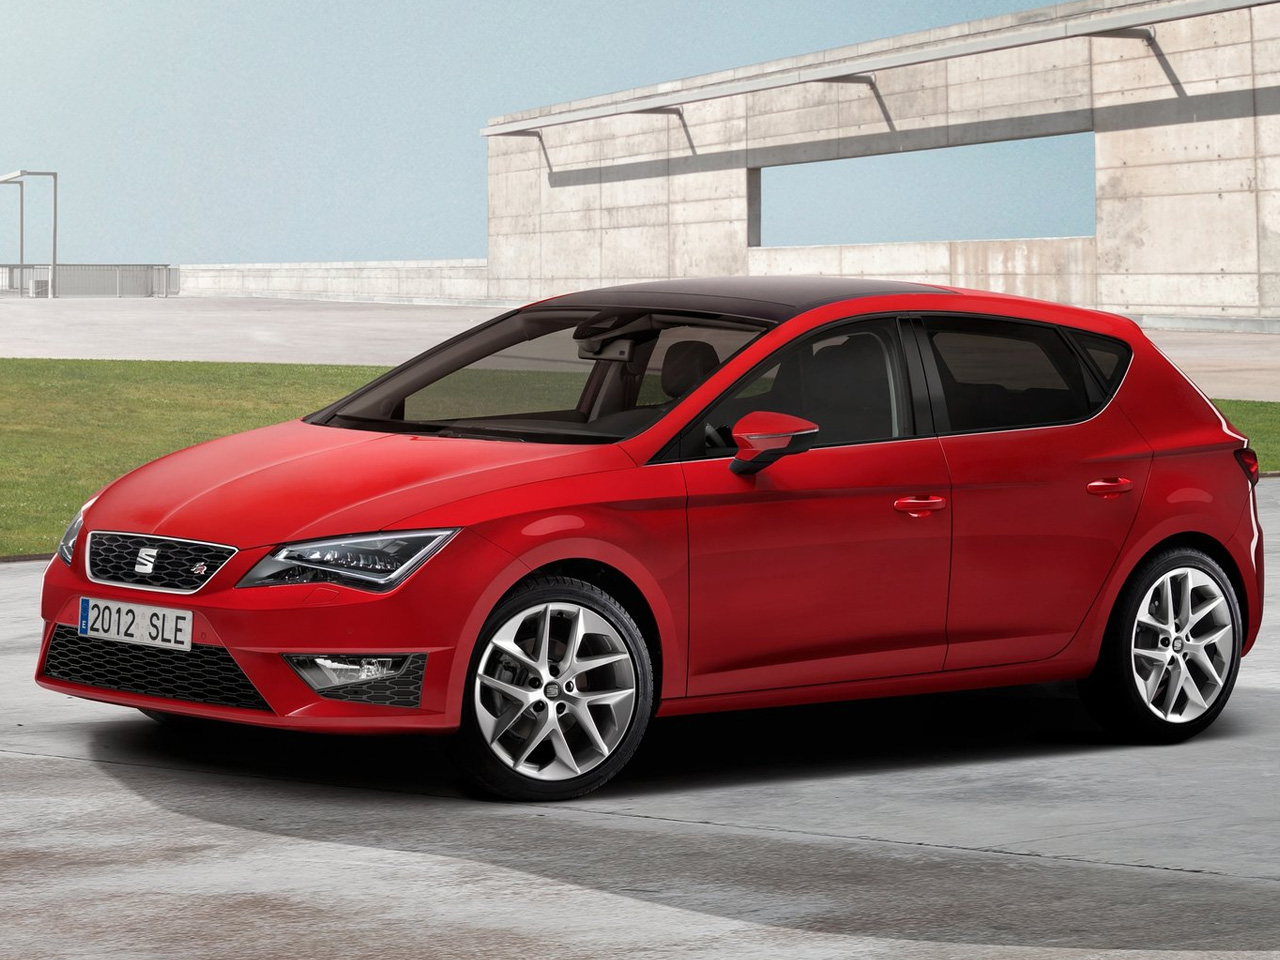 2013 seat leon fr tdi. Black Bedroom Furniture Sets. Home Design Ideas